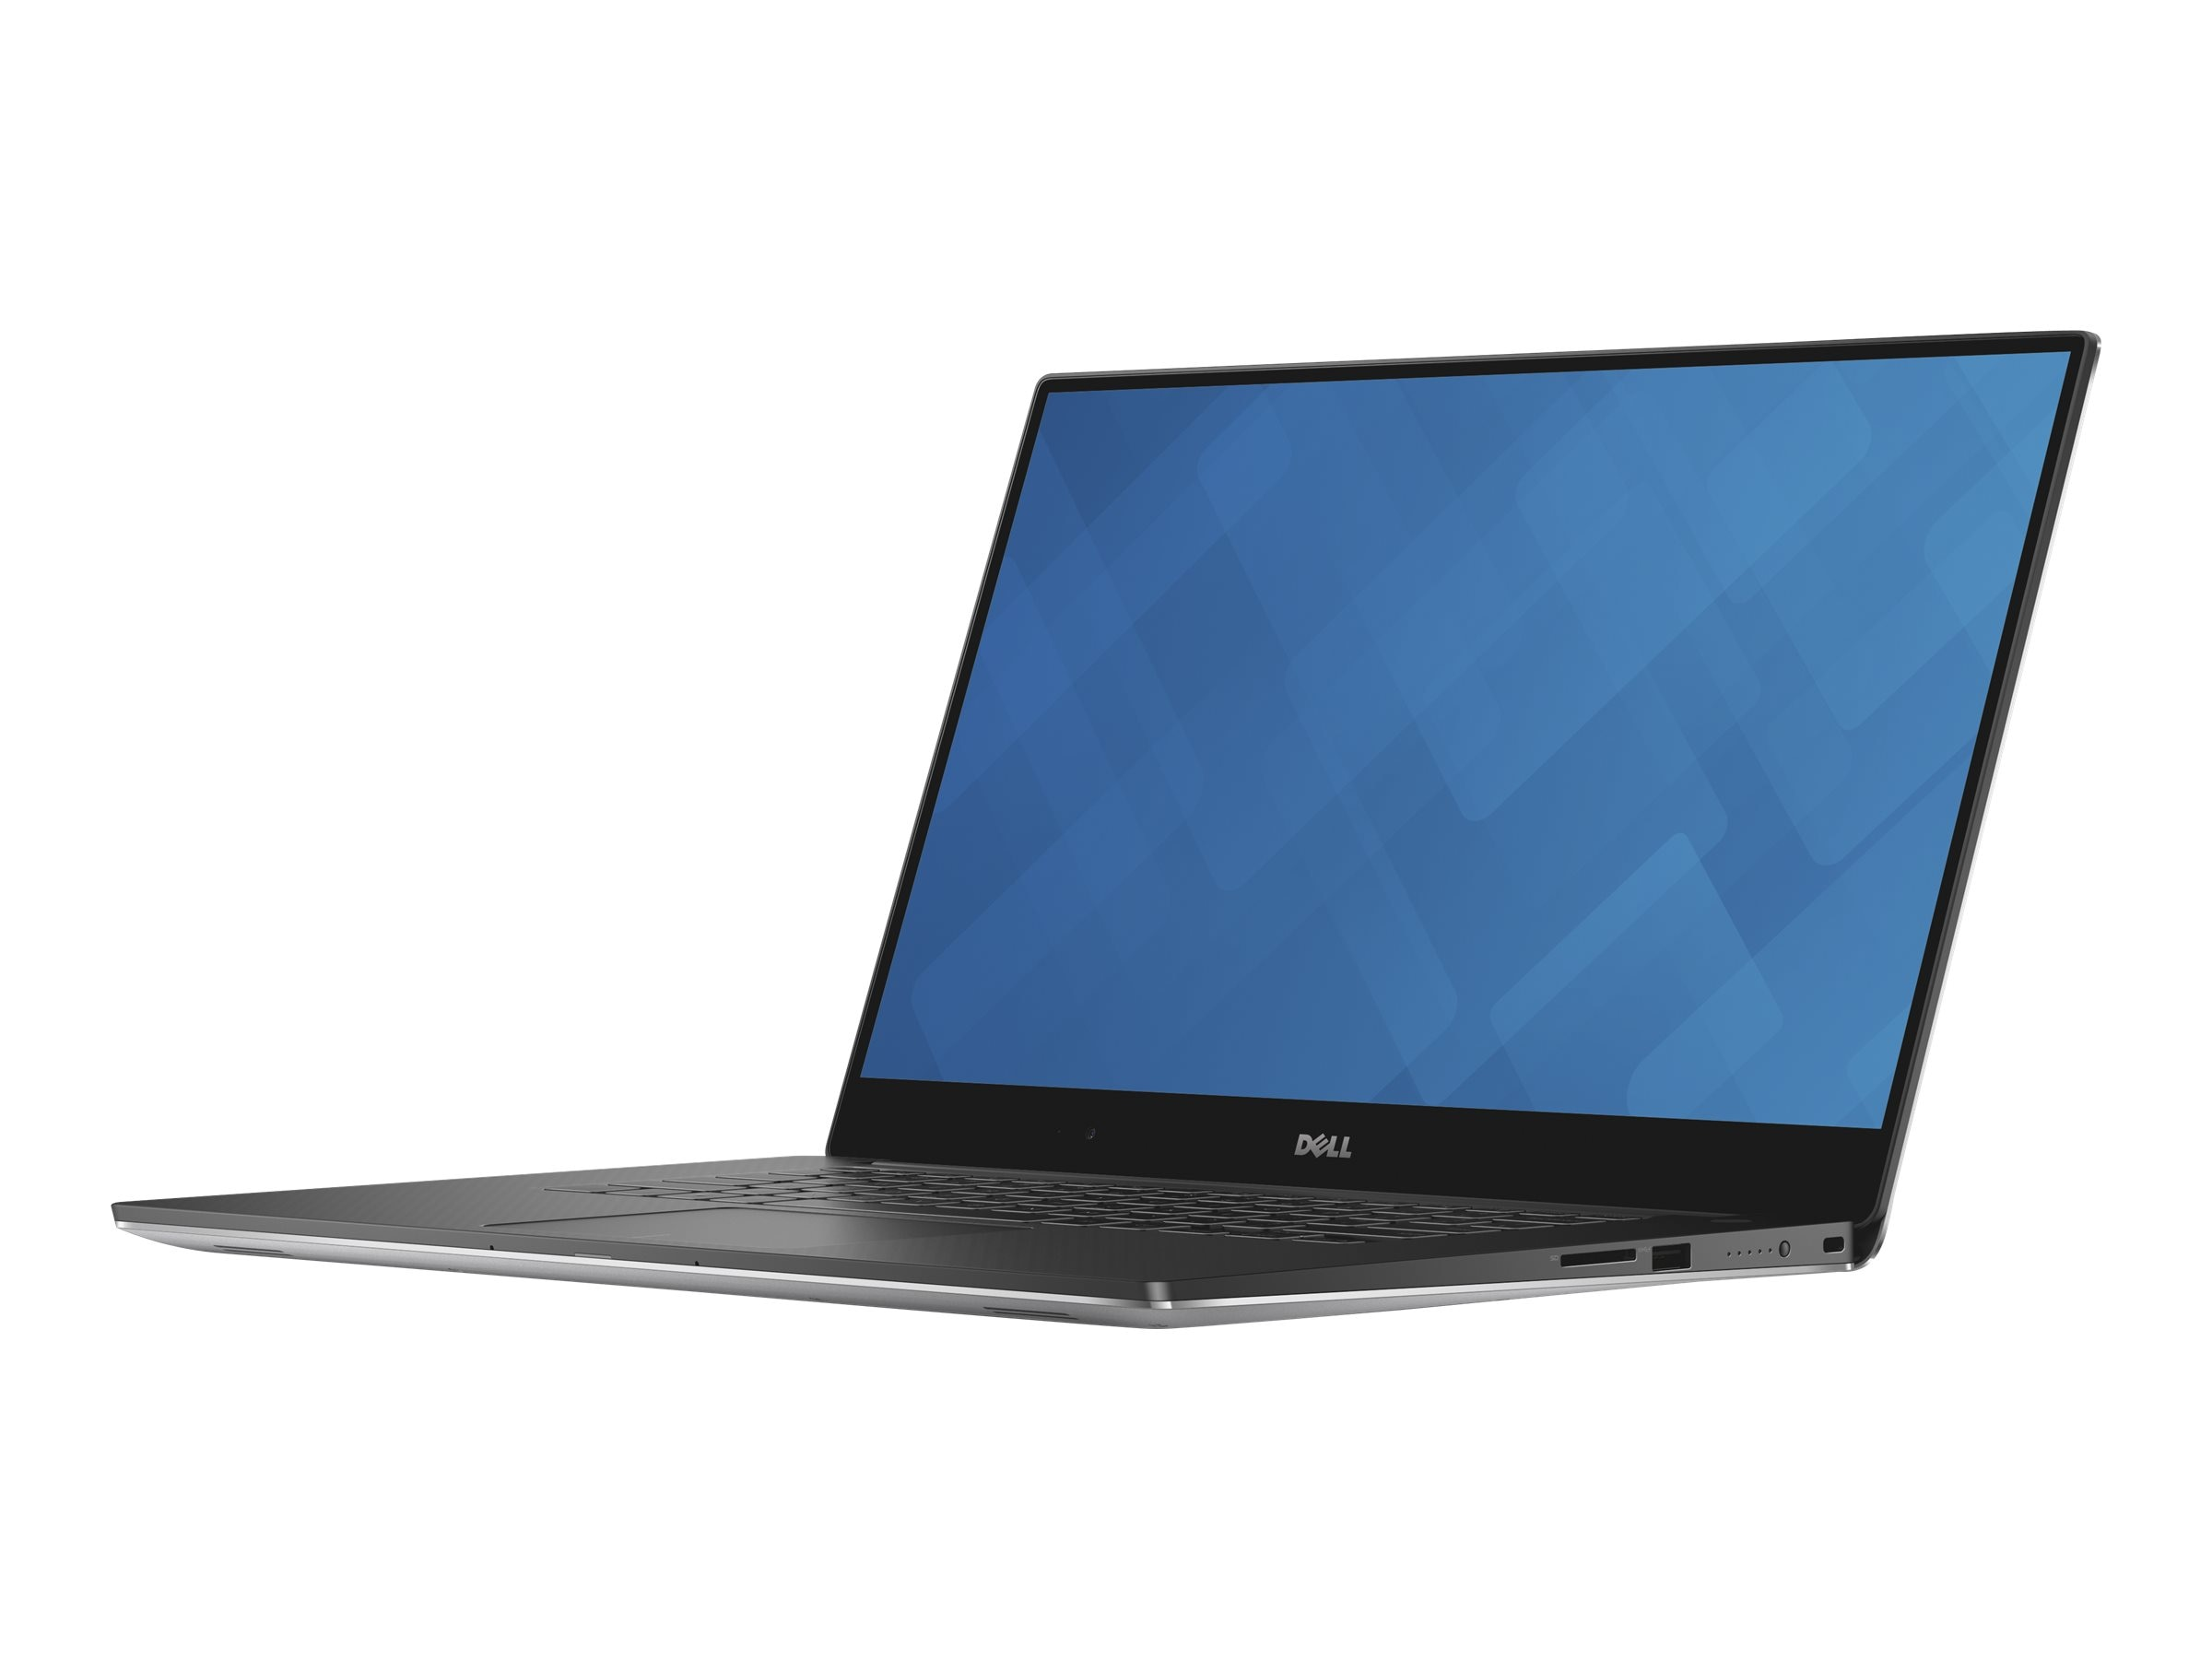 Dell Precision 5510 Core i7-6820HQ 2.7GHz 8GB 256GB ac BT 3C M1000M 15.6 FHD IPS W7P64-W10